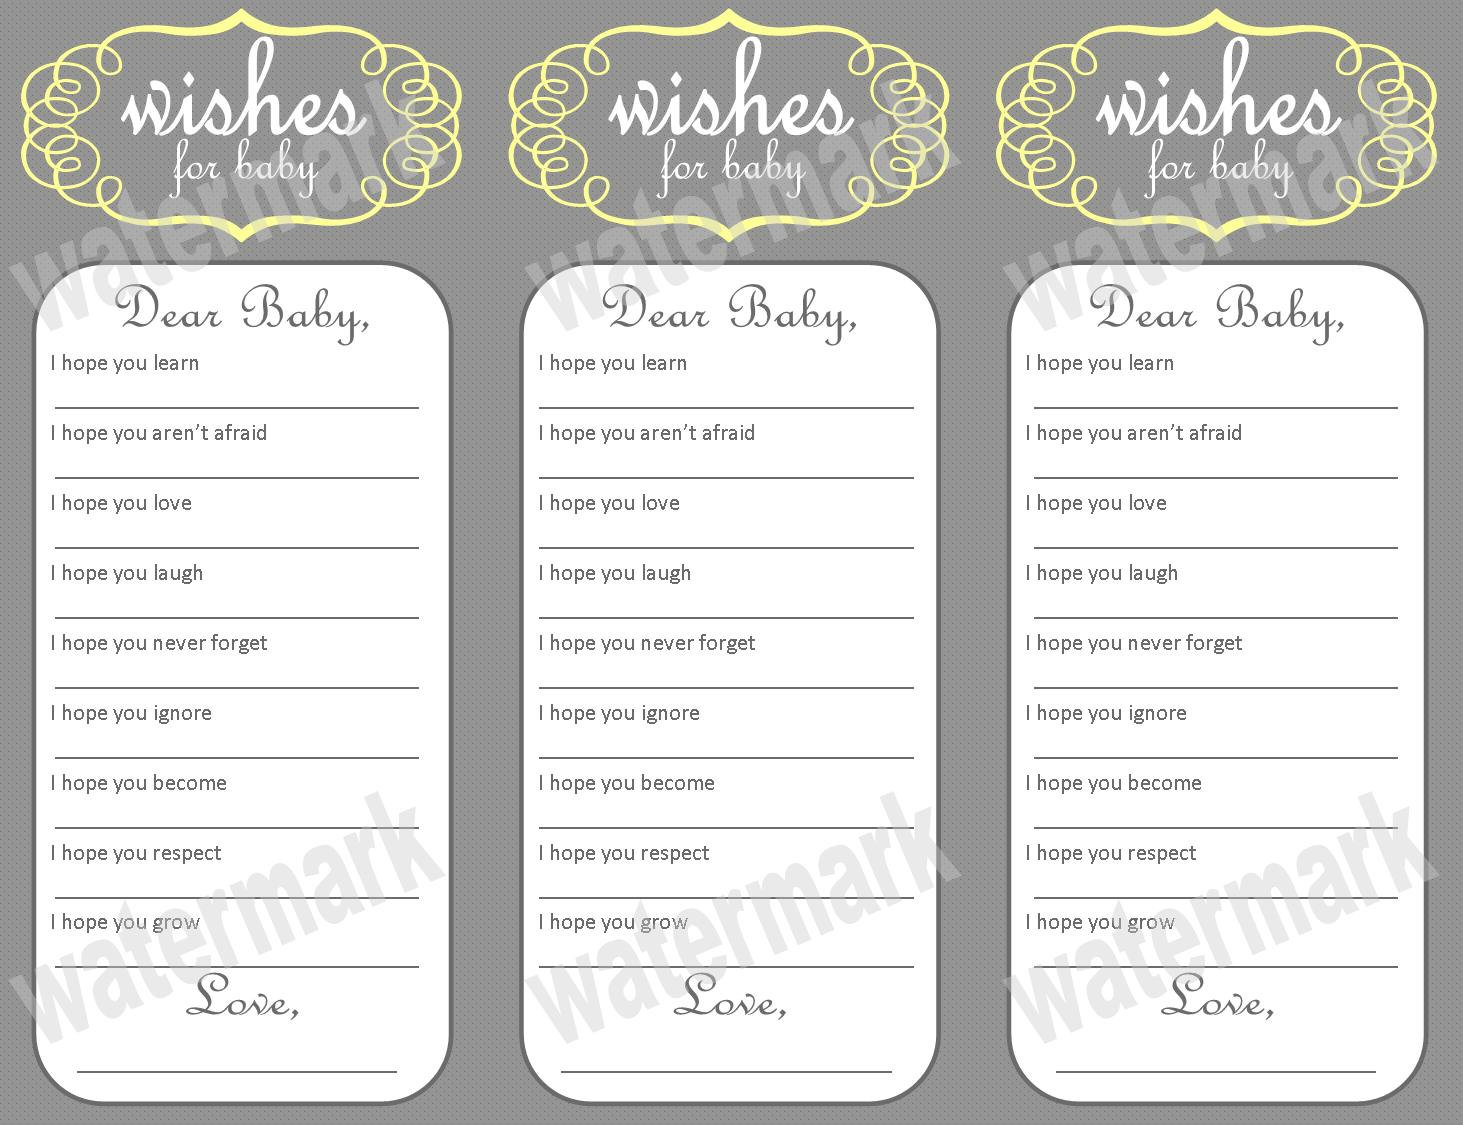 wishes for baby template printable 5 best images of free printable baby wishes template